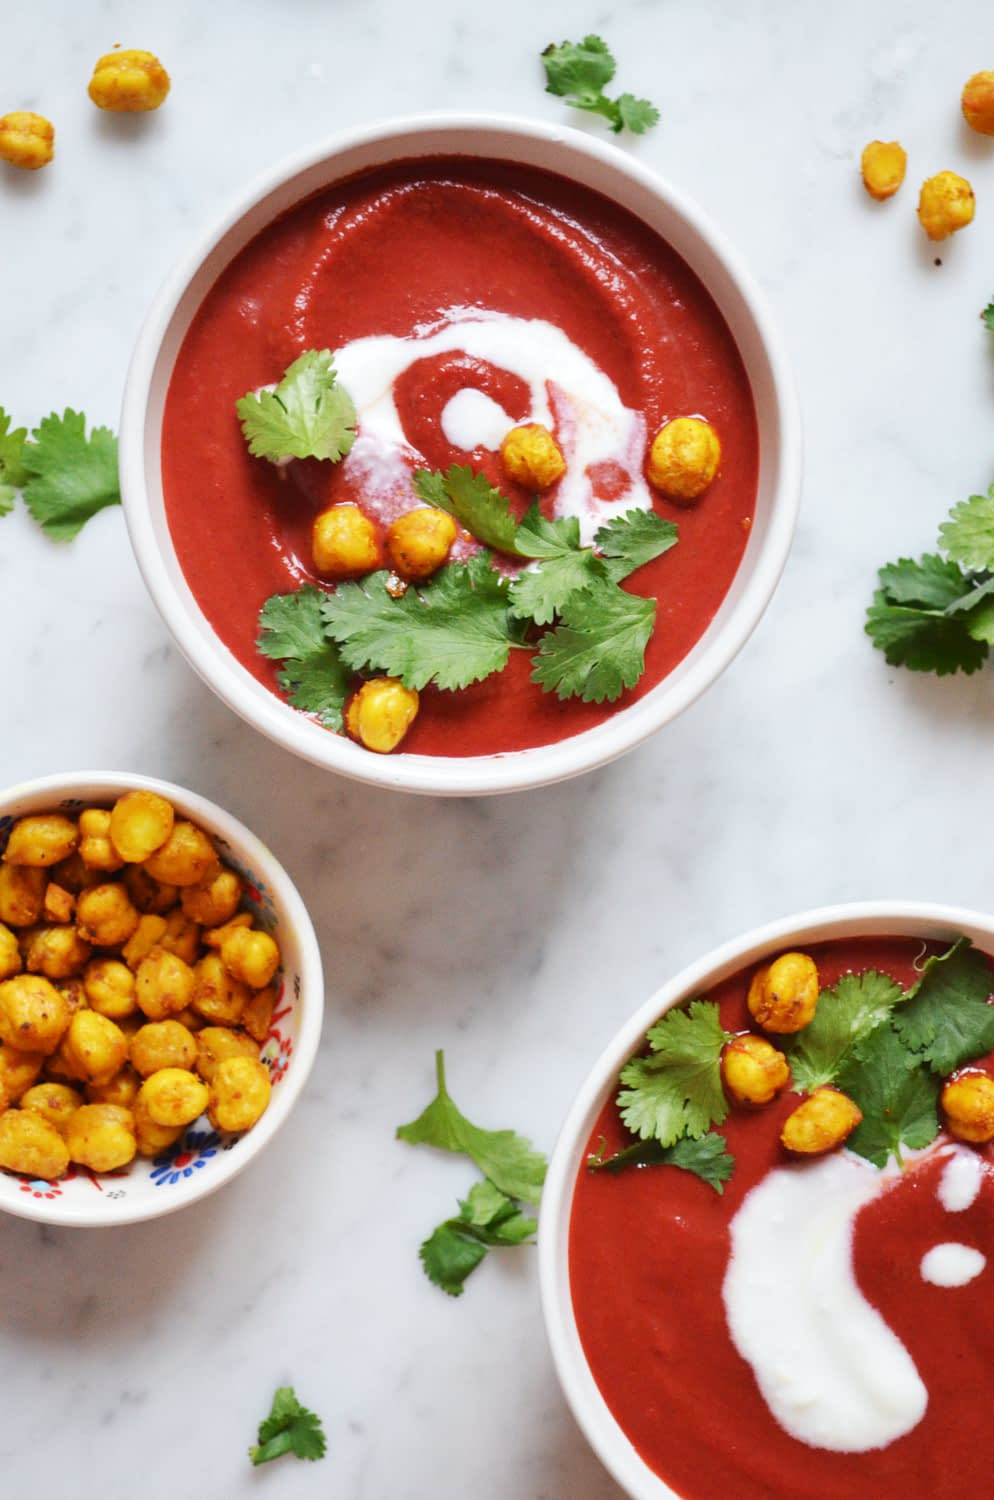 Recipe for curried beet soup with madras roasted chickpeas